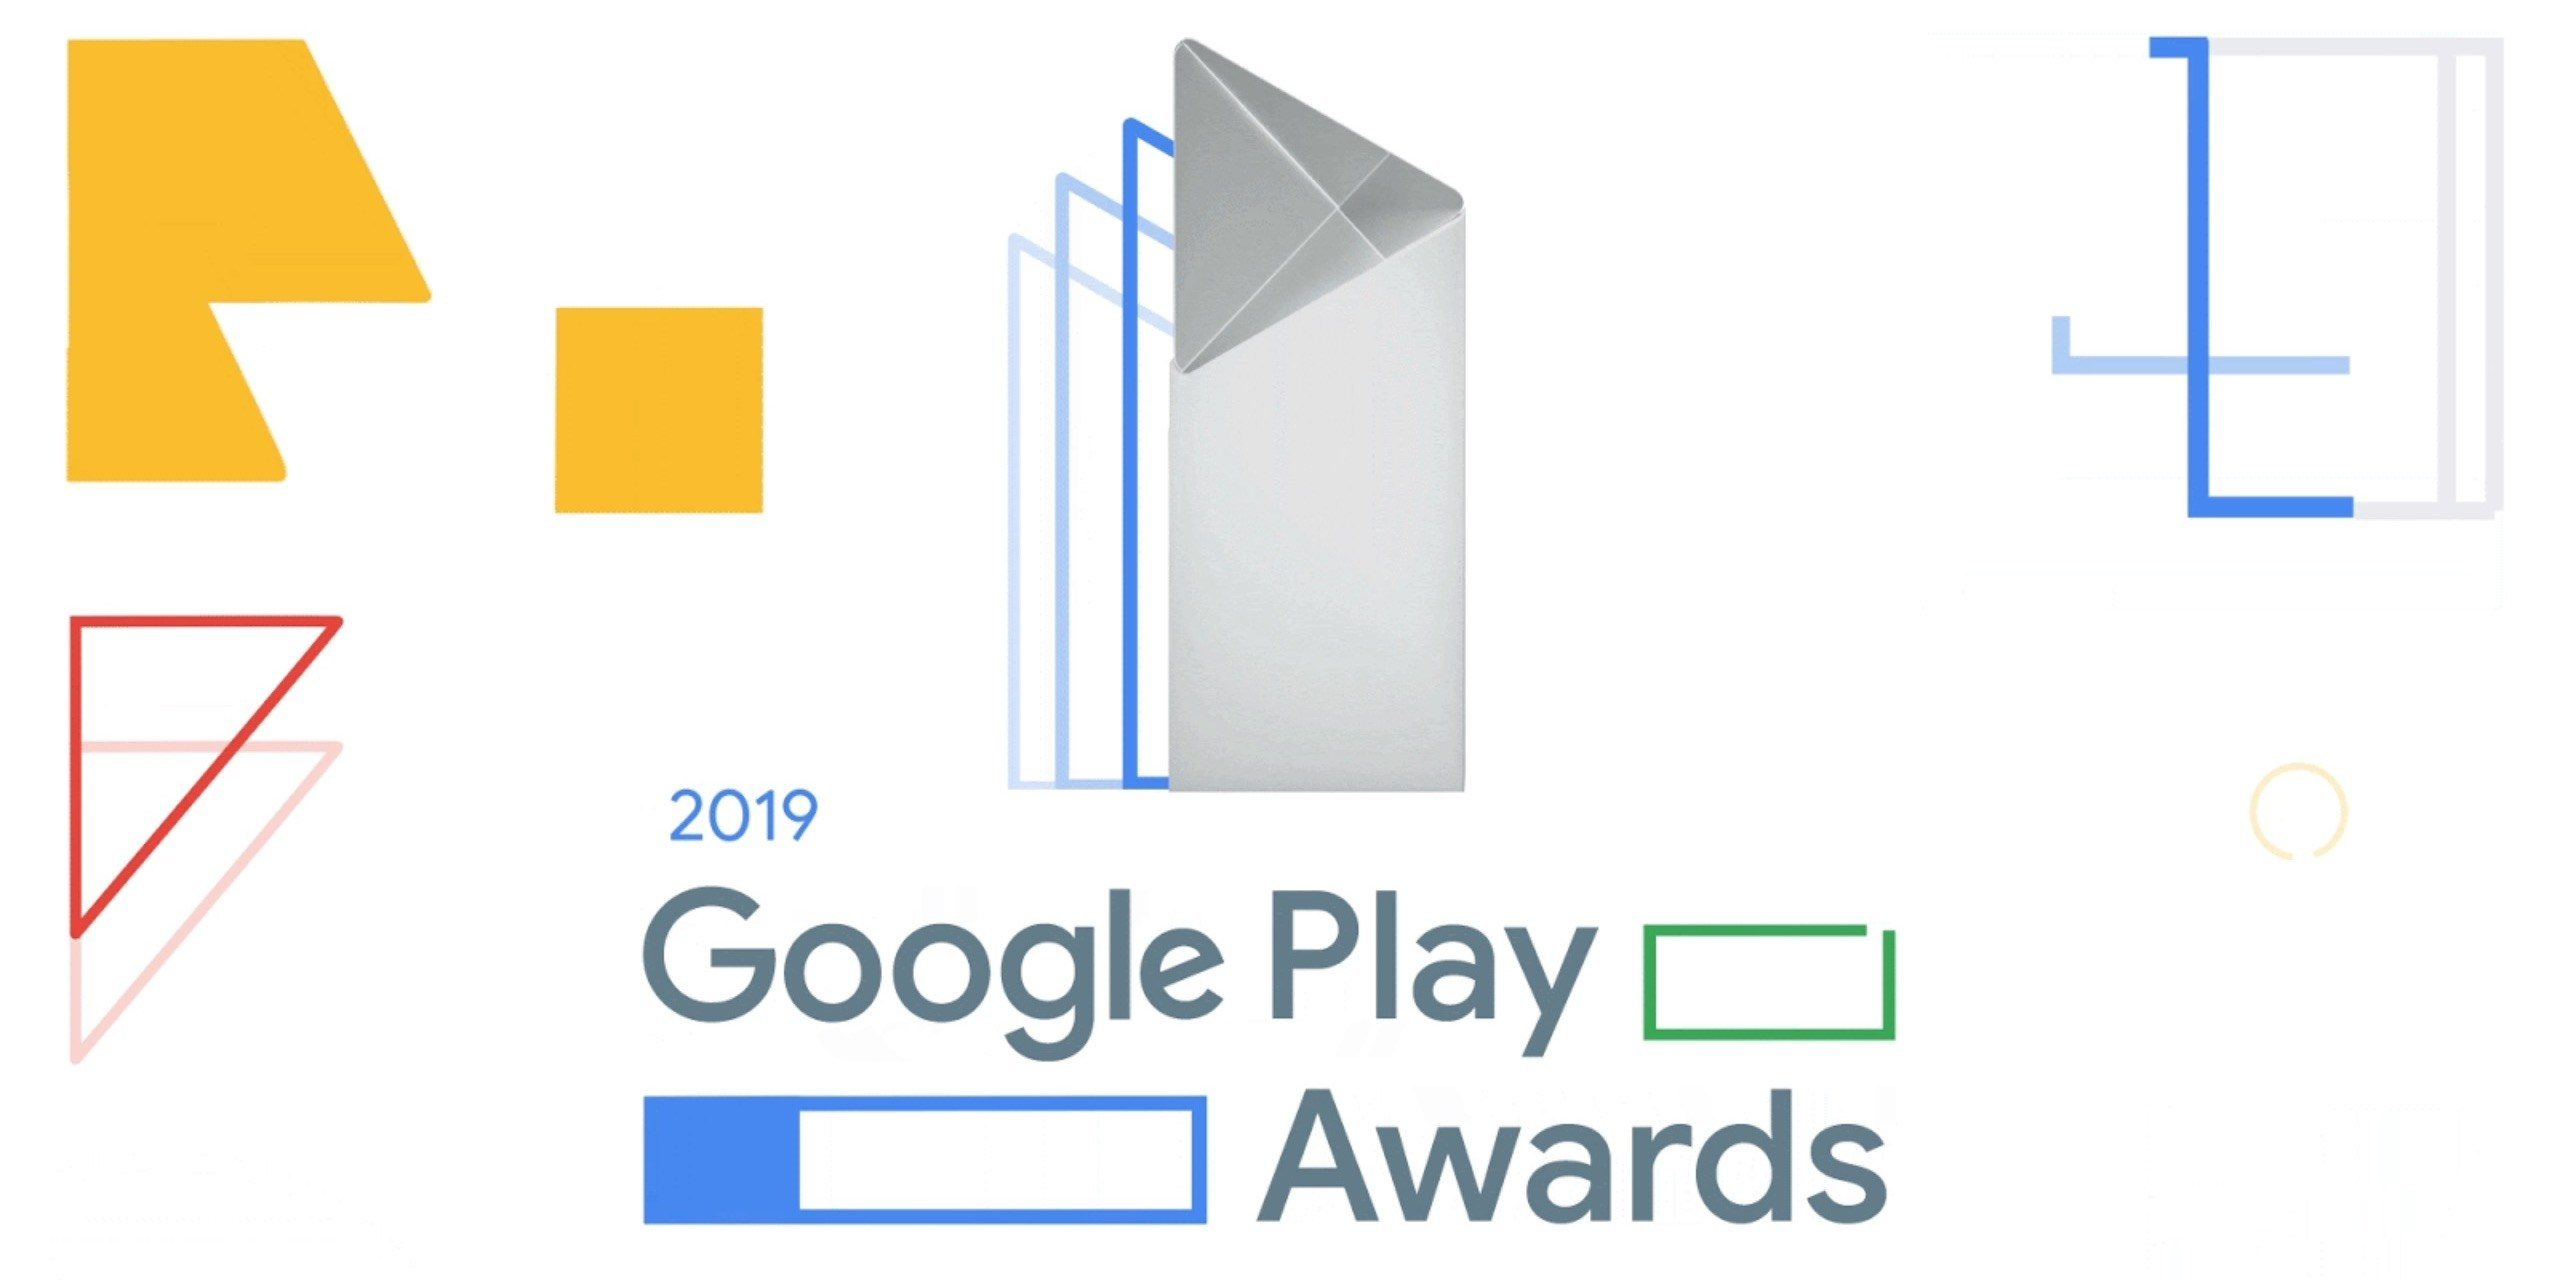 2019 Google Play Award winners highlight top Android apps and games